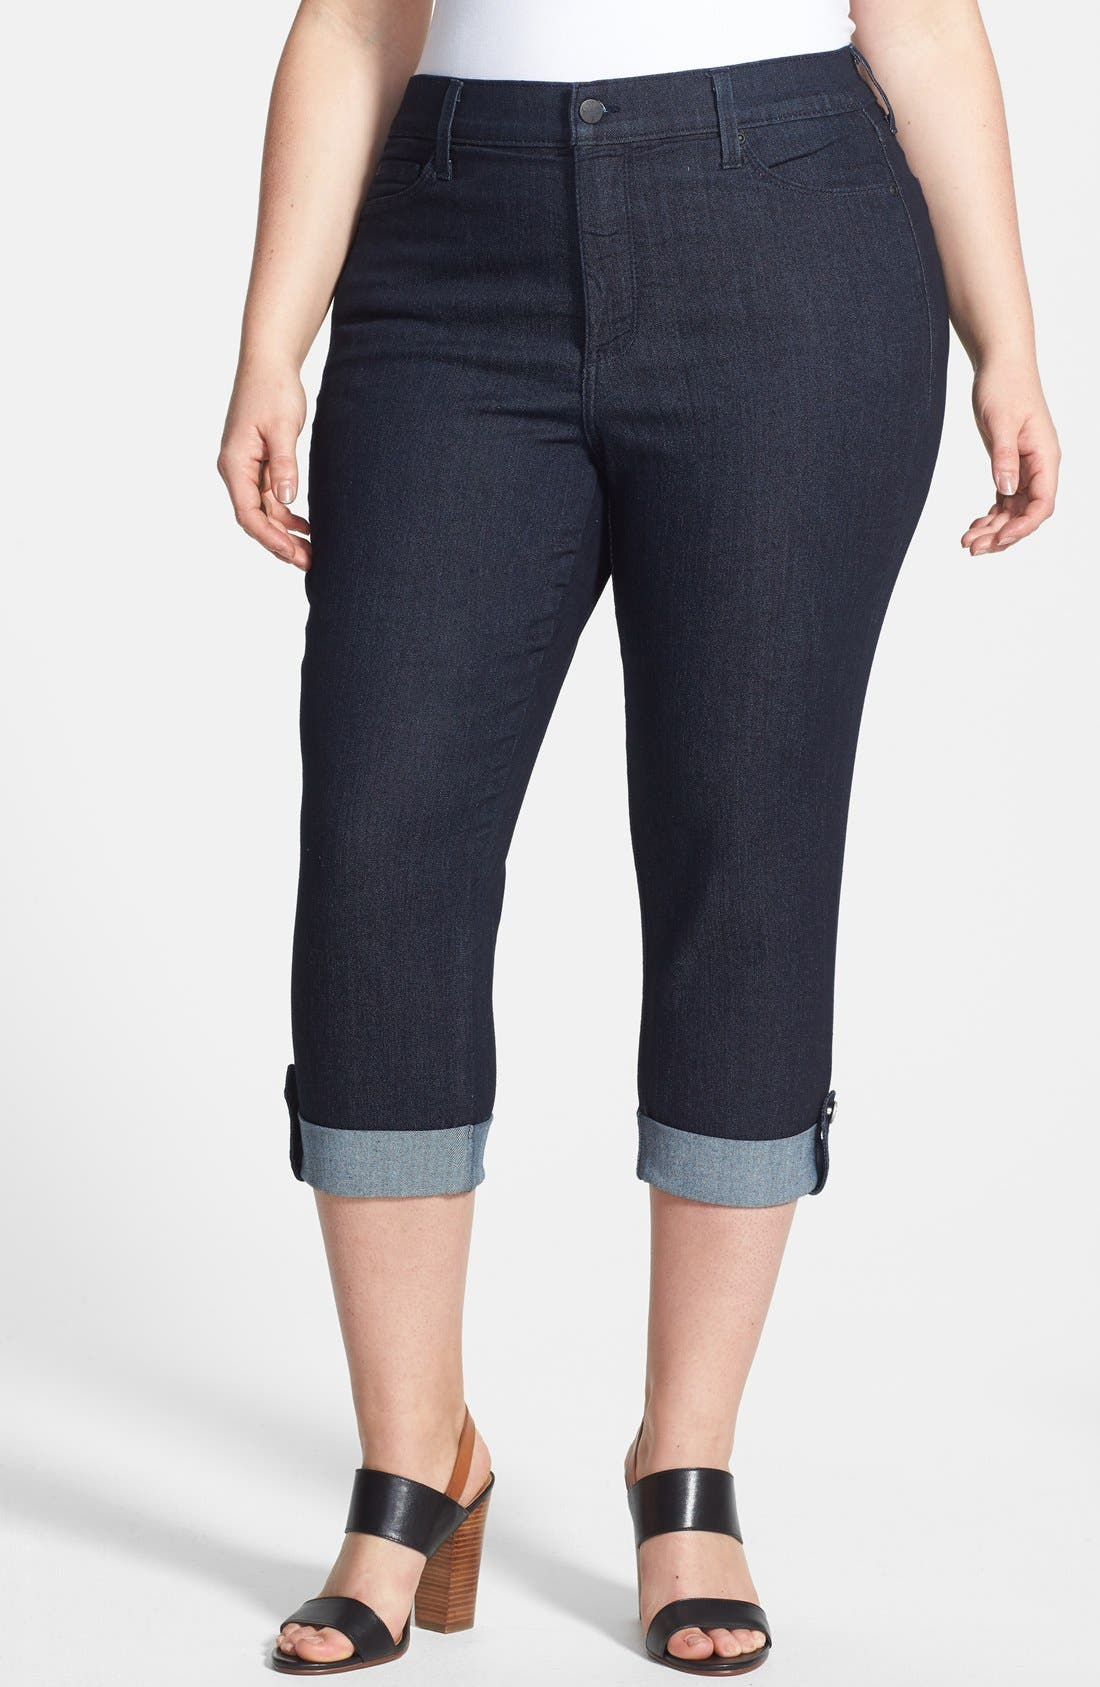 Alternate Image 1 Selected - NYDJ 'Lyris' Cuffed Stretch Crop Jeans (Dark Enzyme) (Plus Size)